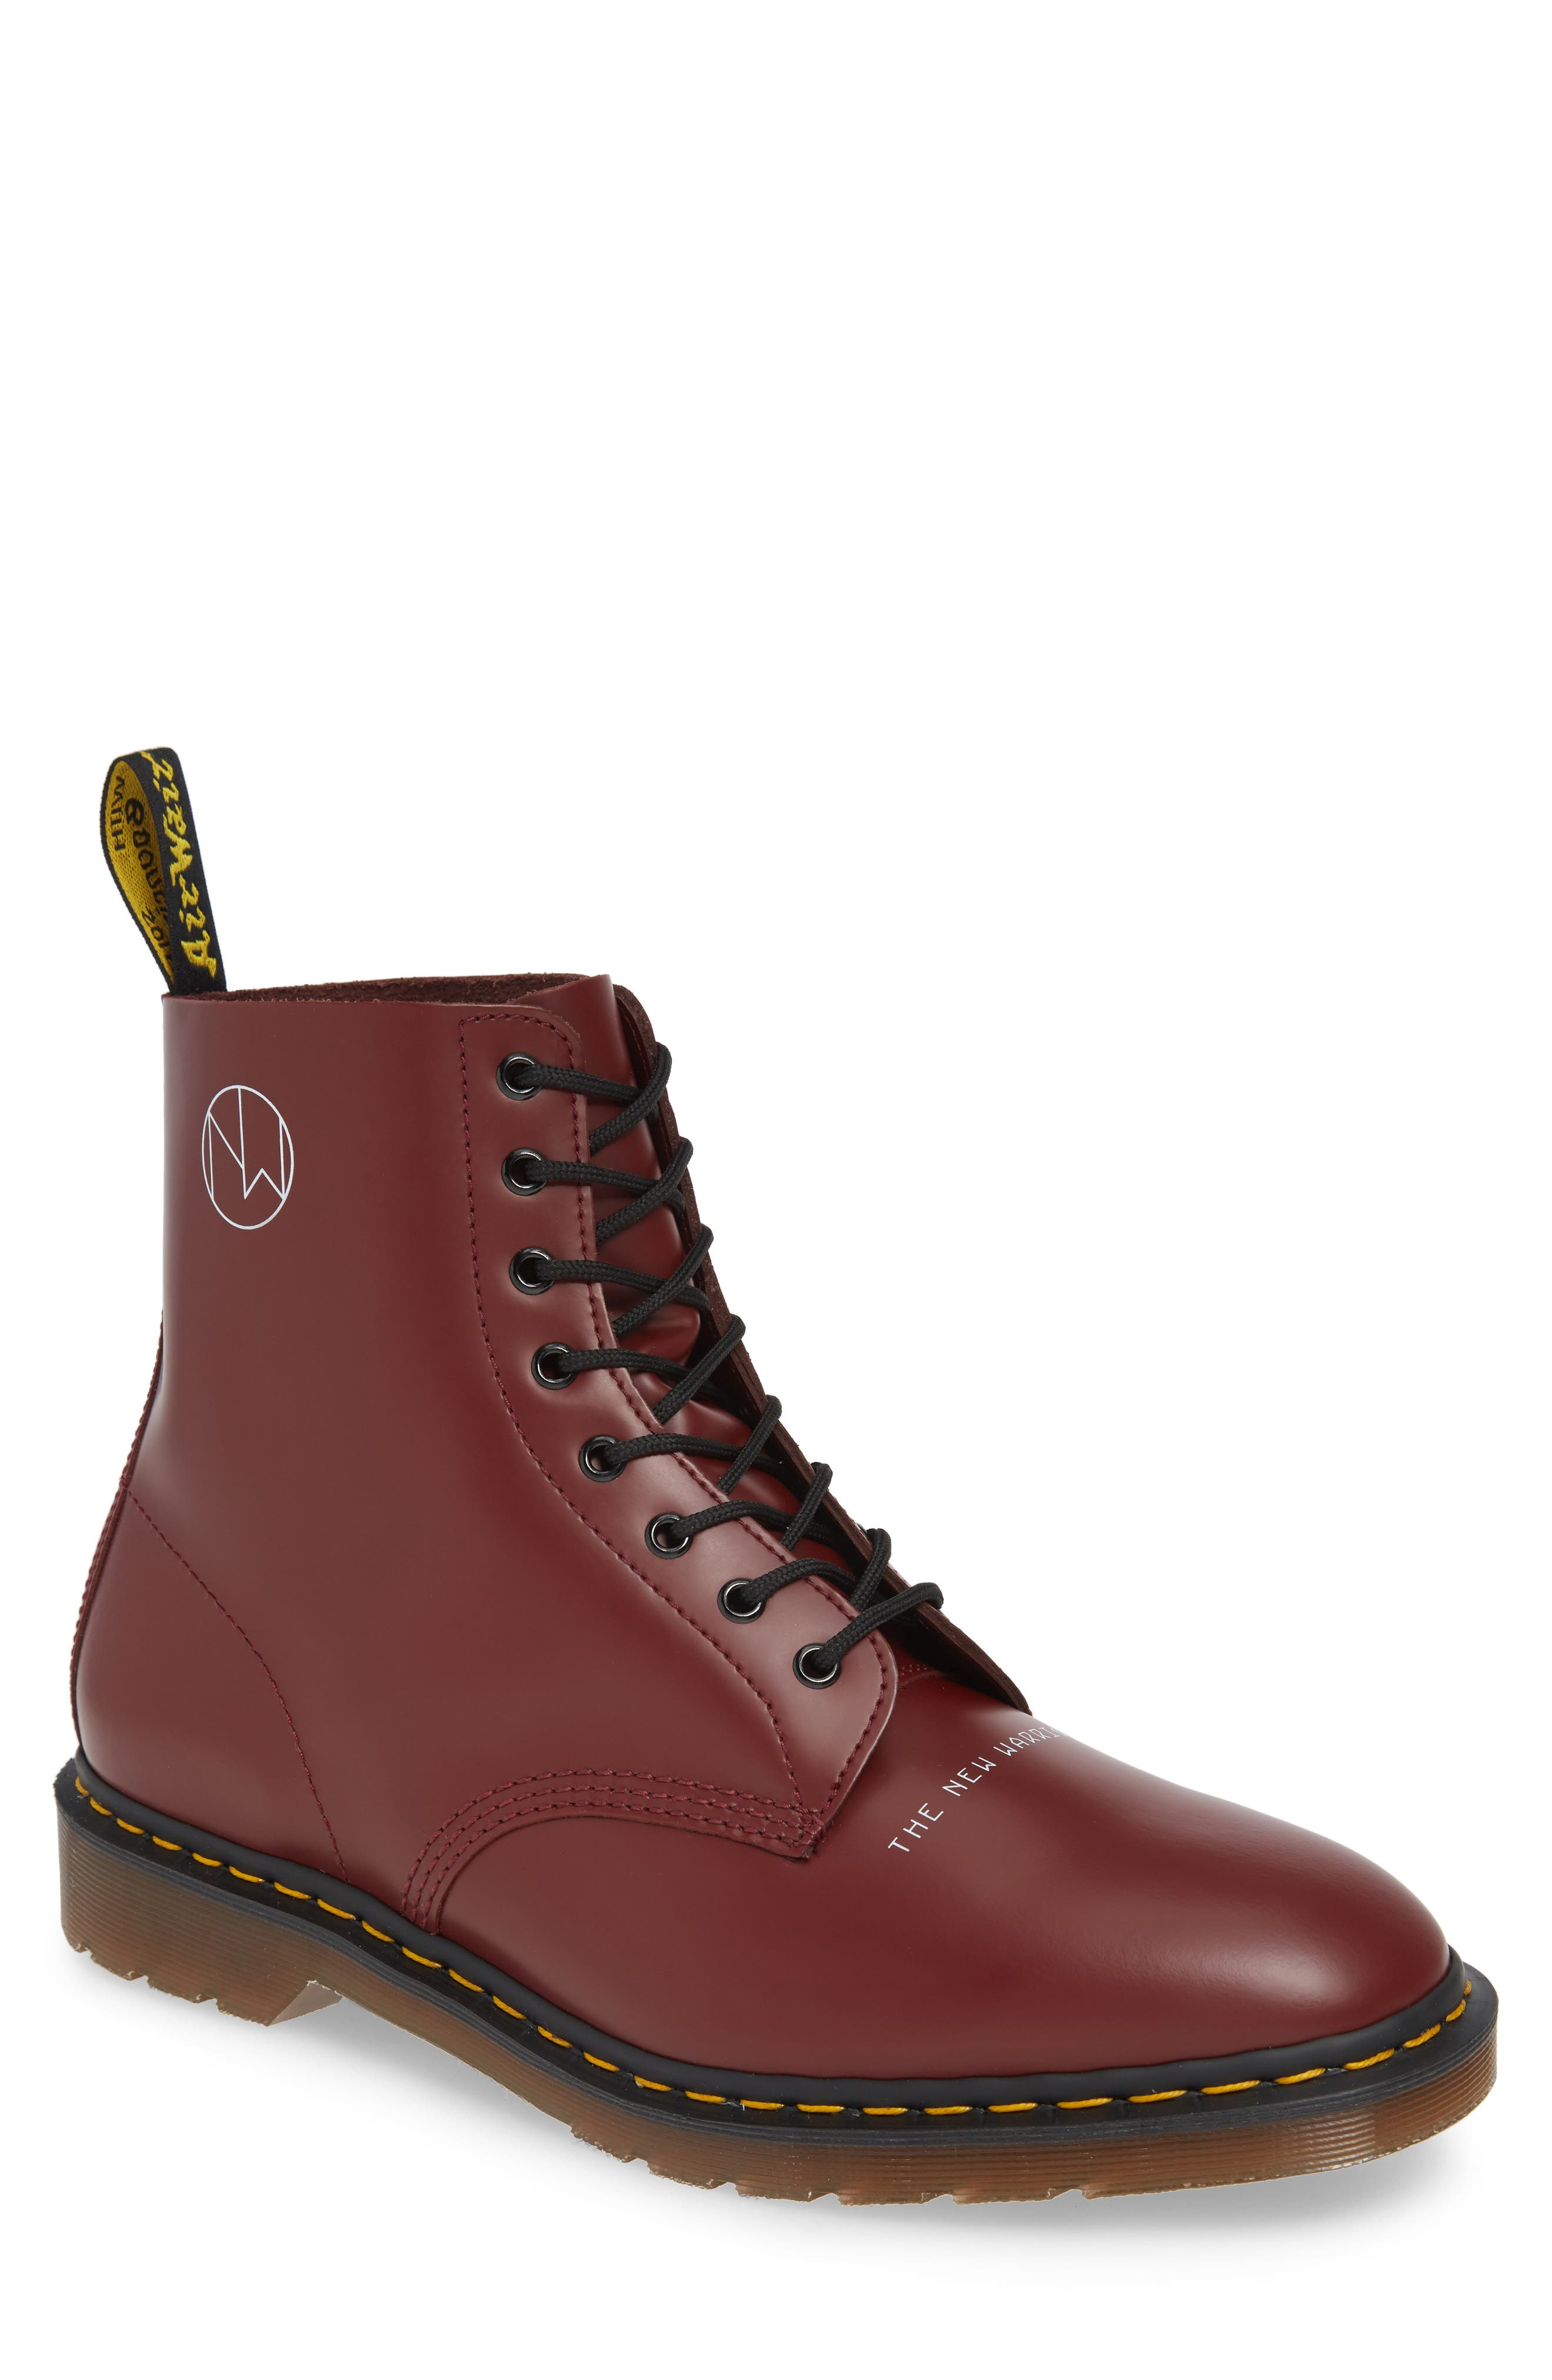 Dr. Martens X Undercover 1460 Boot, Red